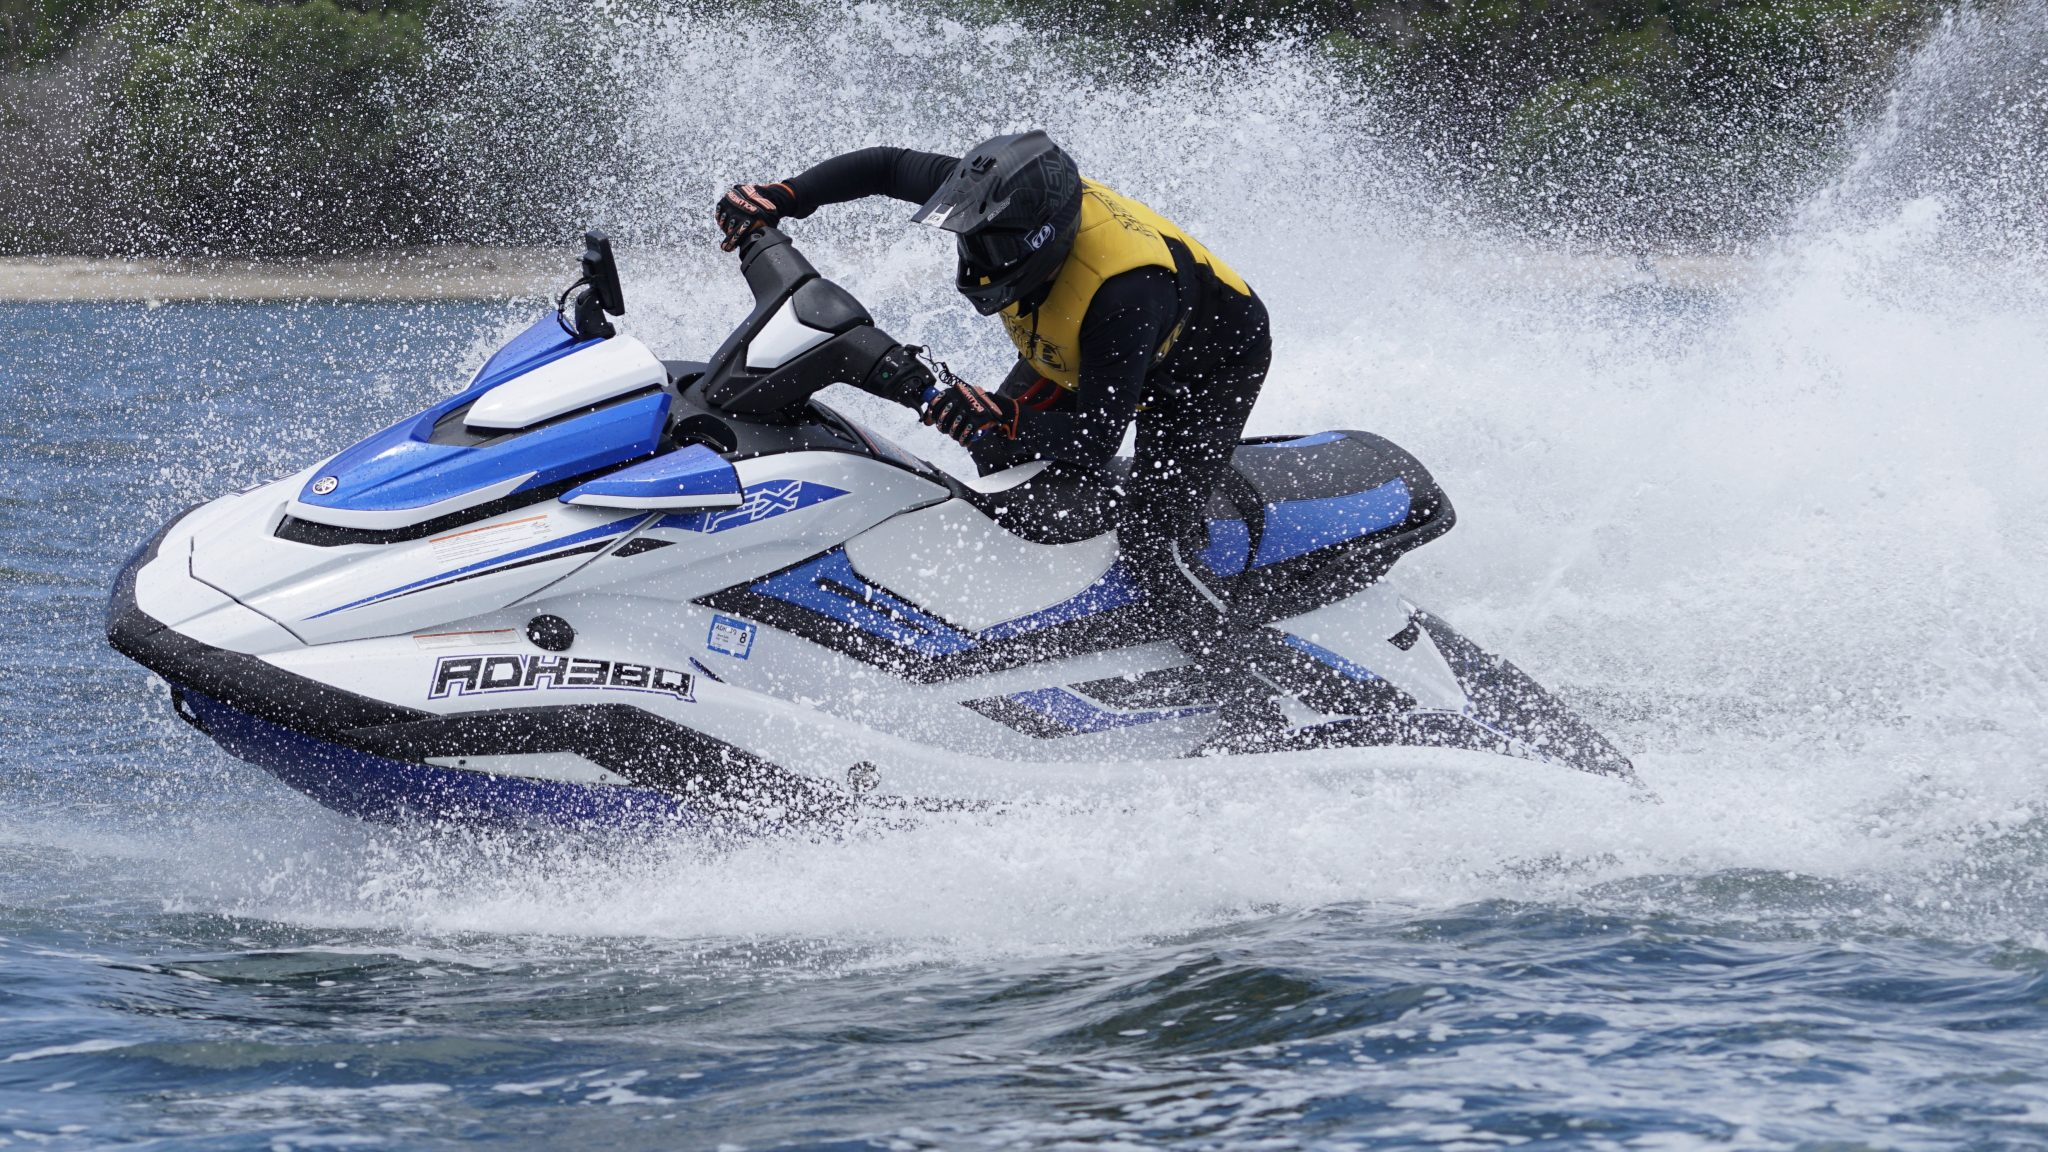 2020 Yamaha WaveRunner FX HO: Review, price and specs